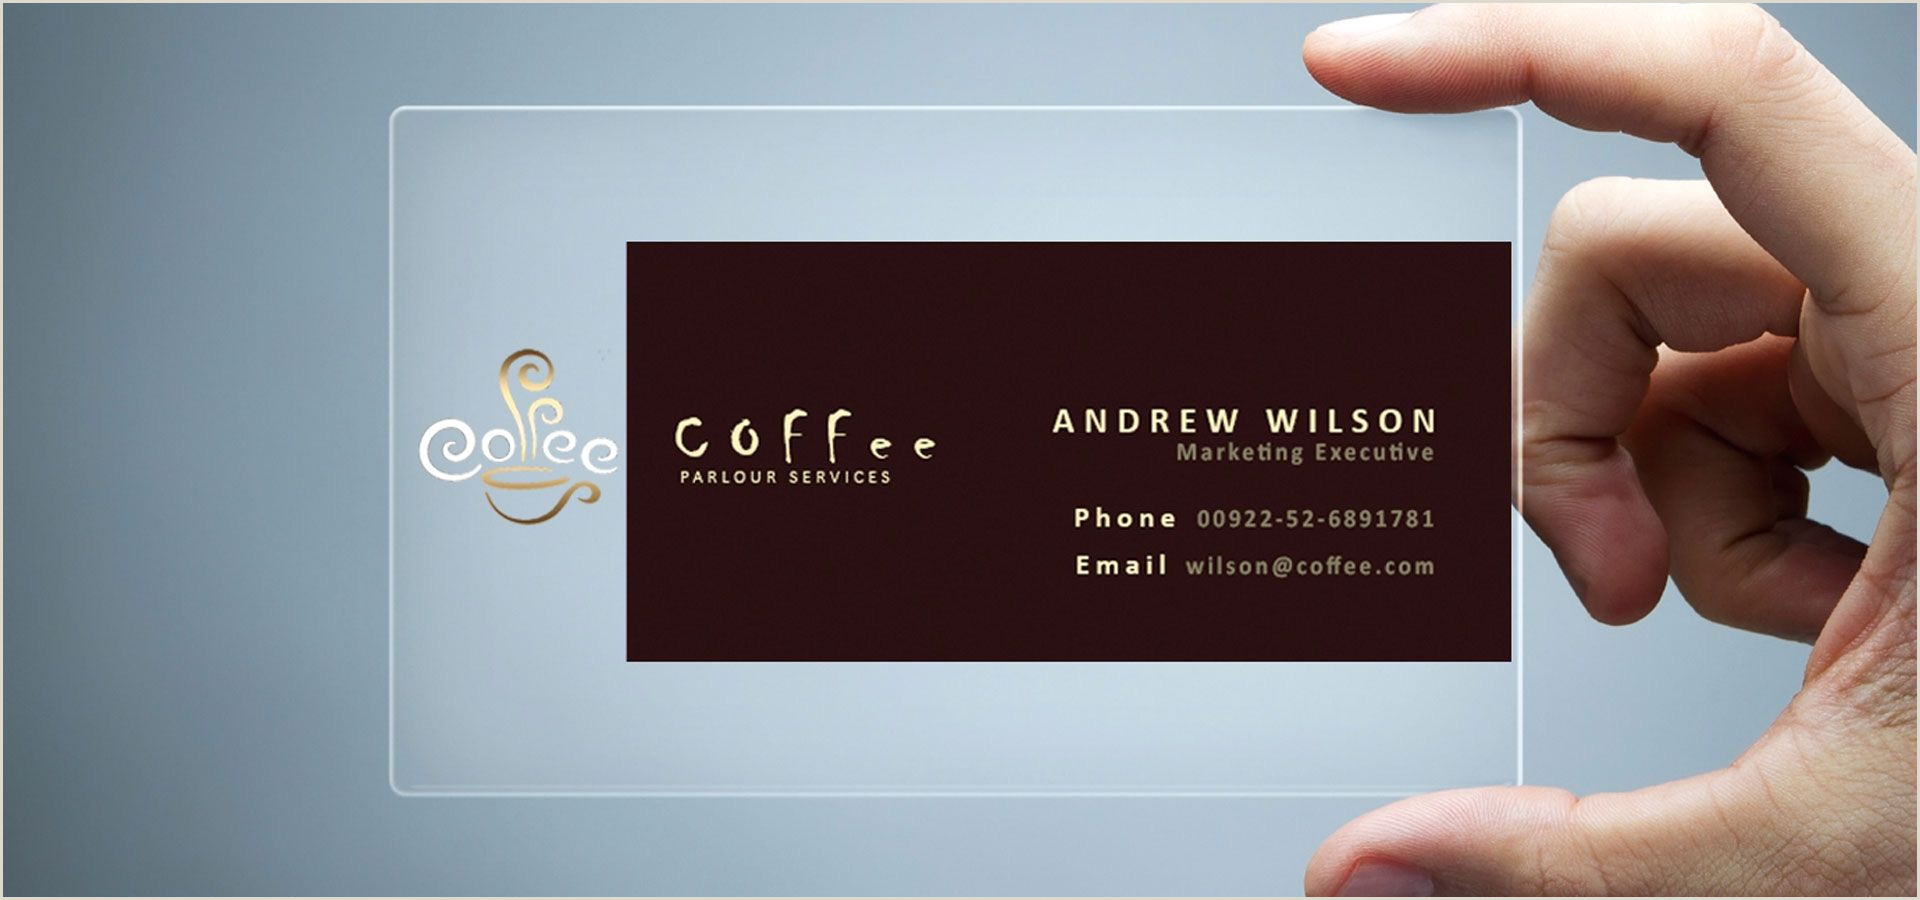 Business Card Designs 2020 The Breathtaking 023 Template Ideas Business Card